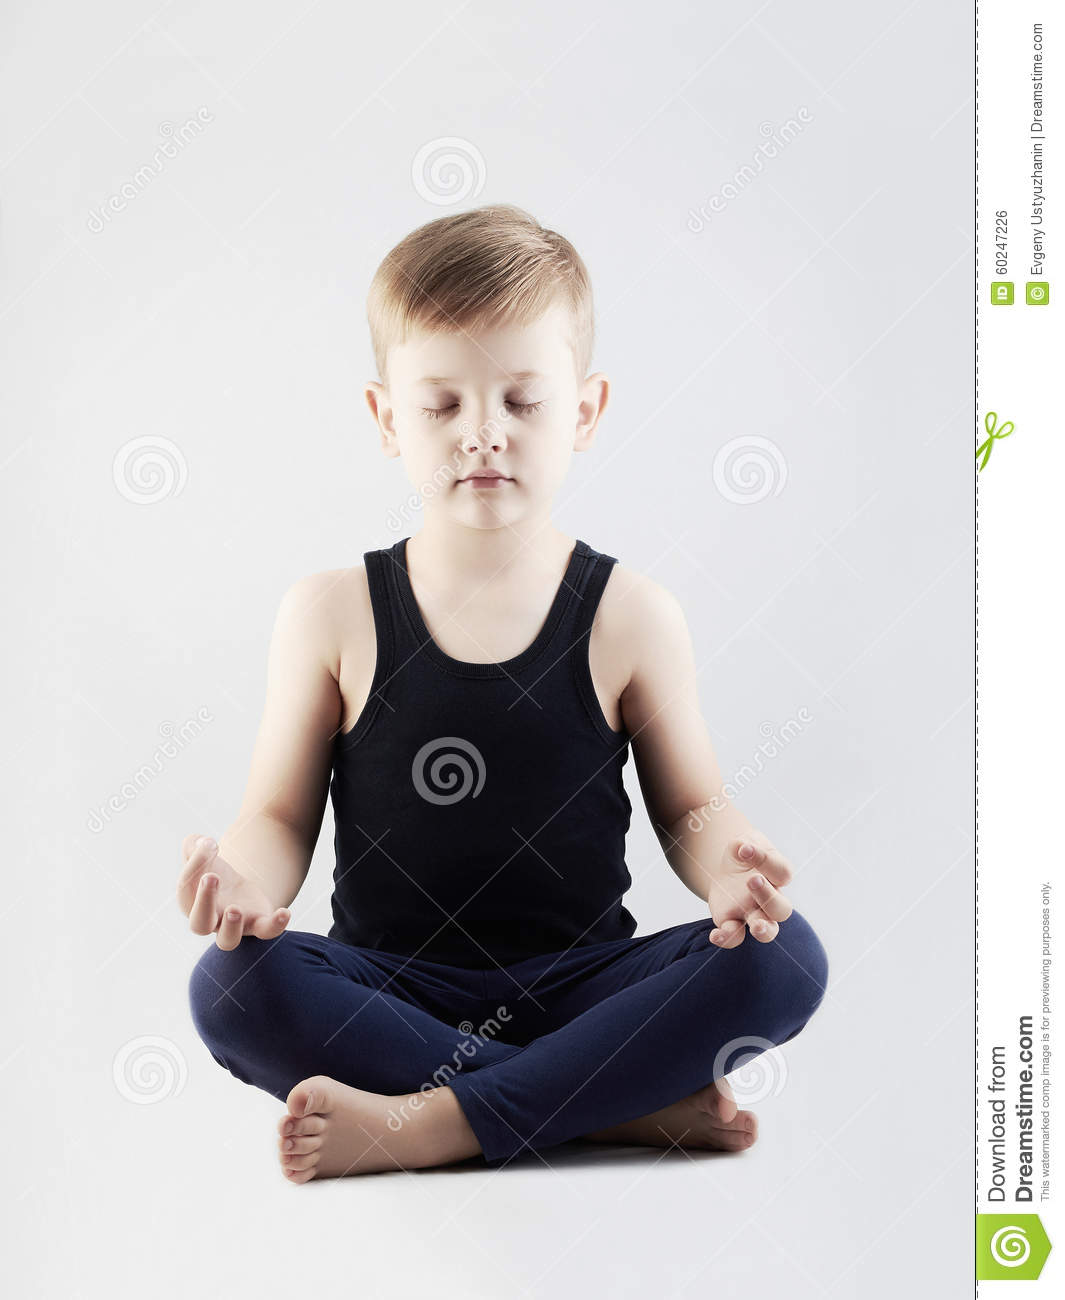 Yoga boy.child in the lotus position.children meditation and relaxation